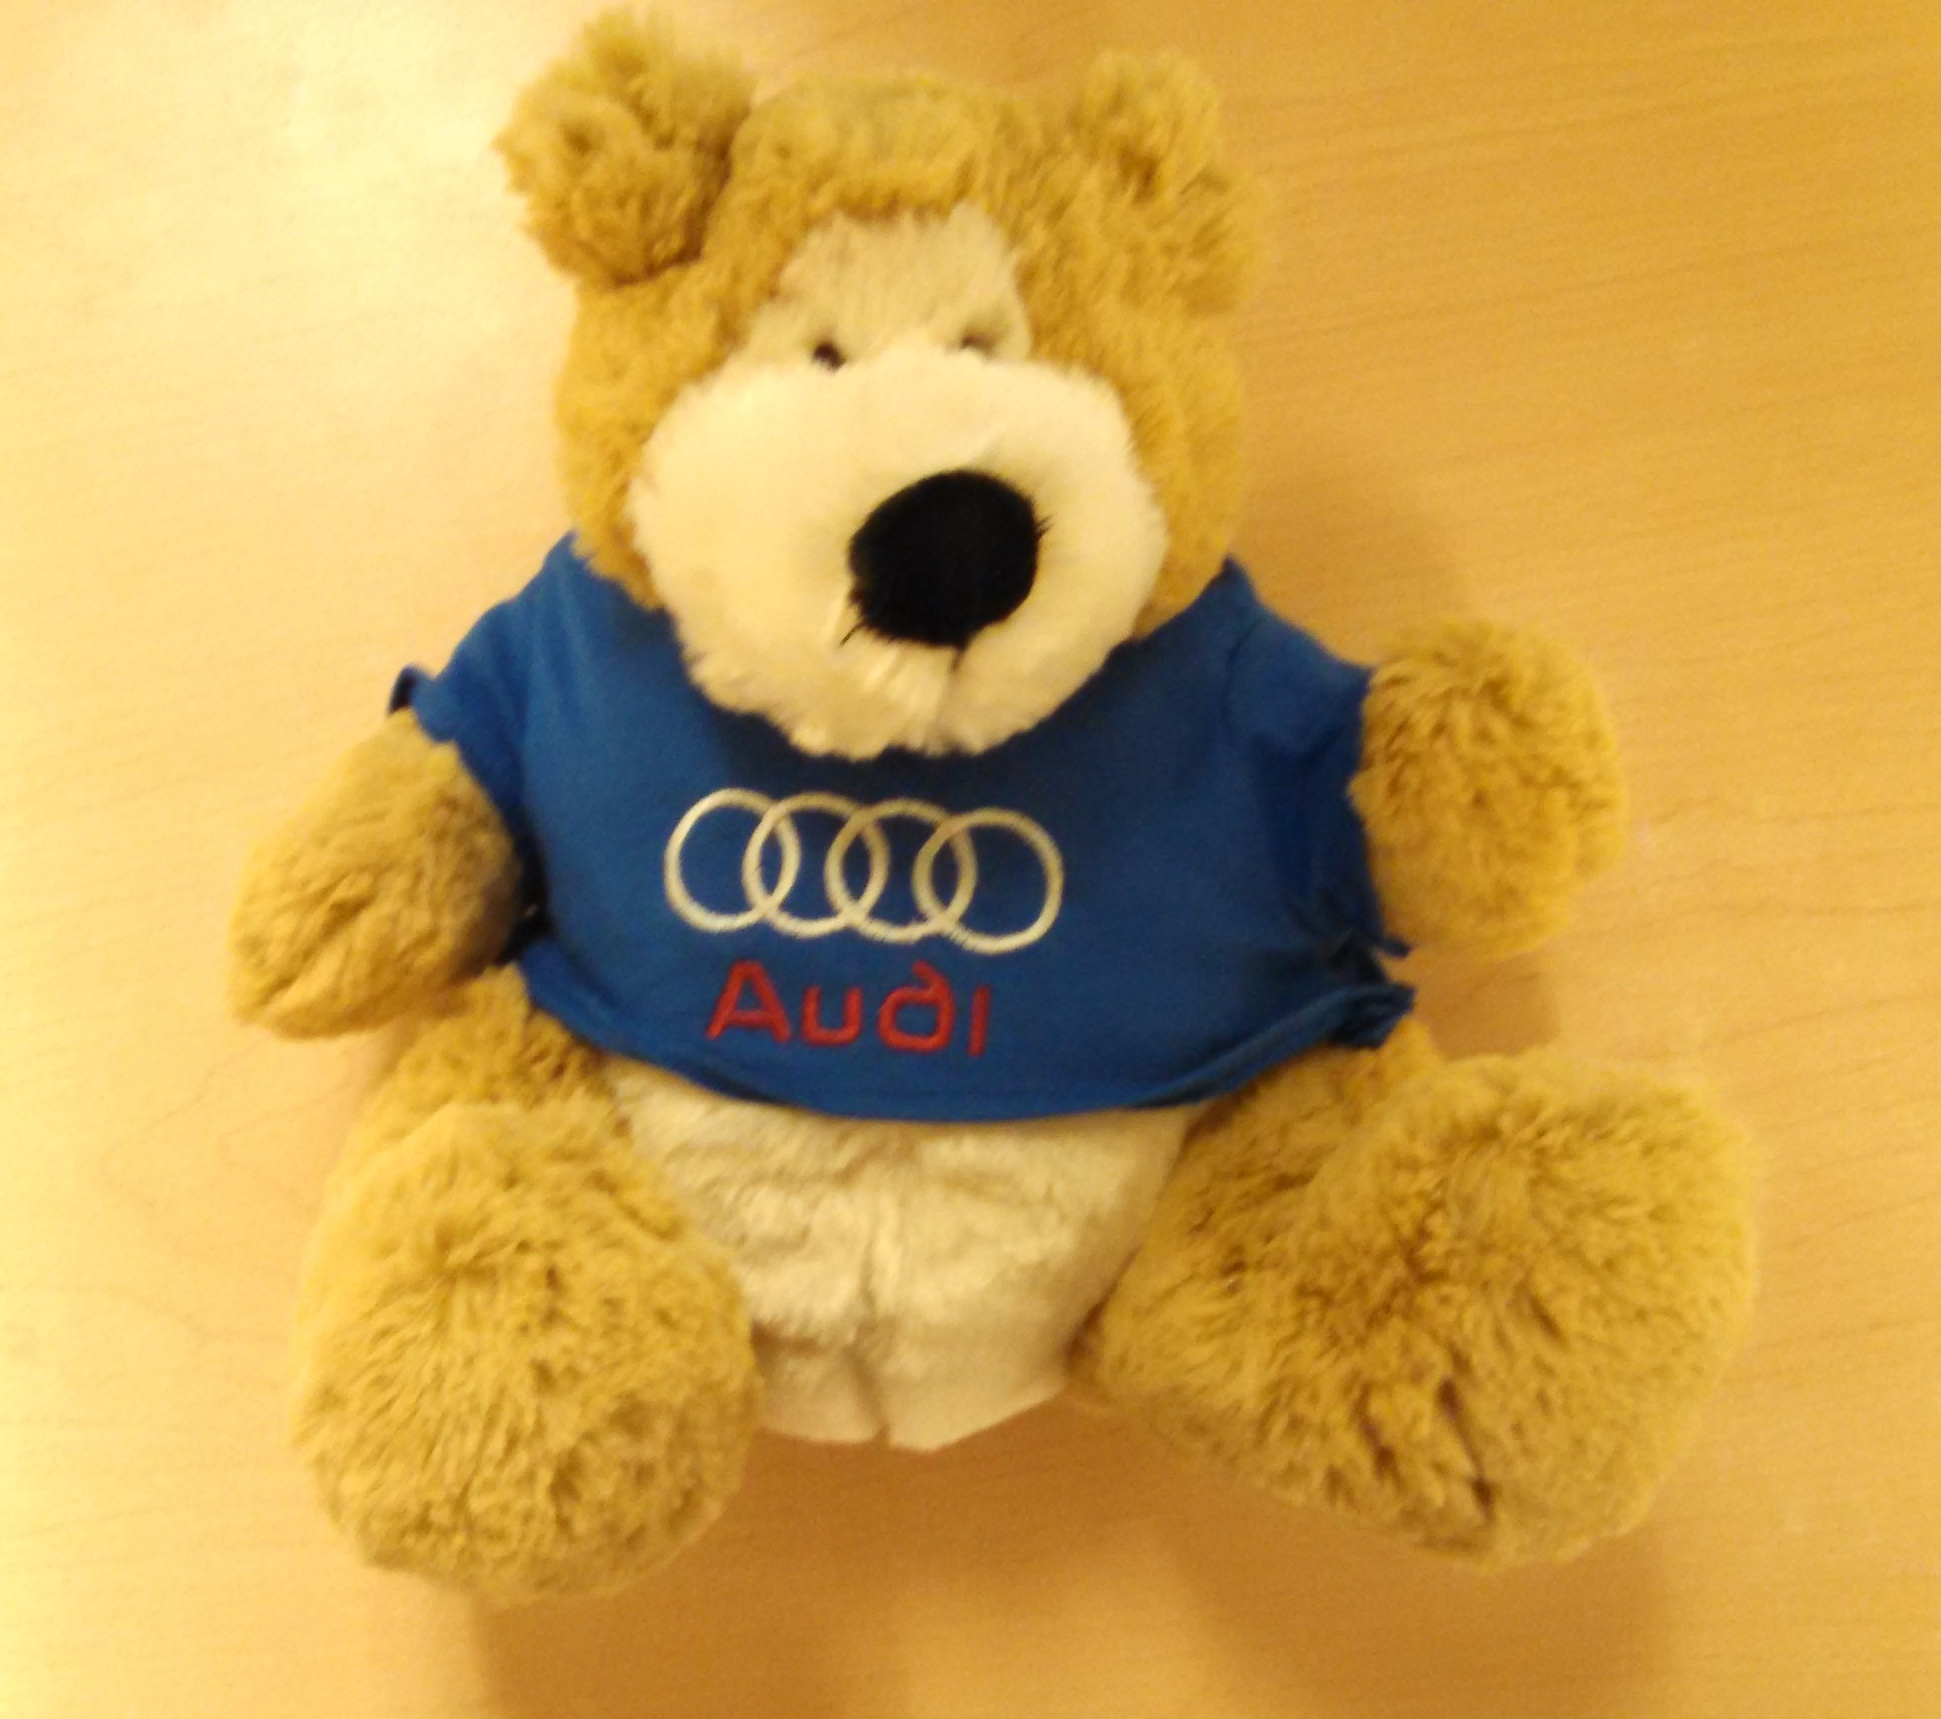 AUDI O9920 Teddy Bear | eBay